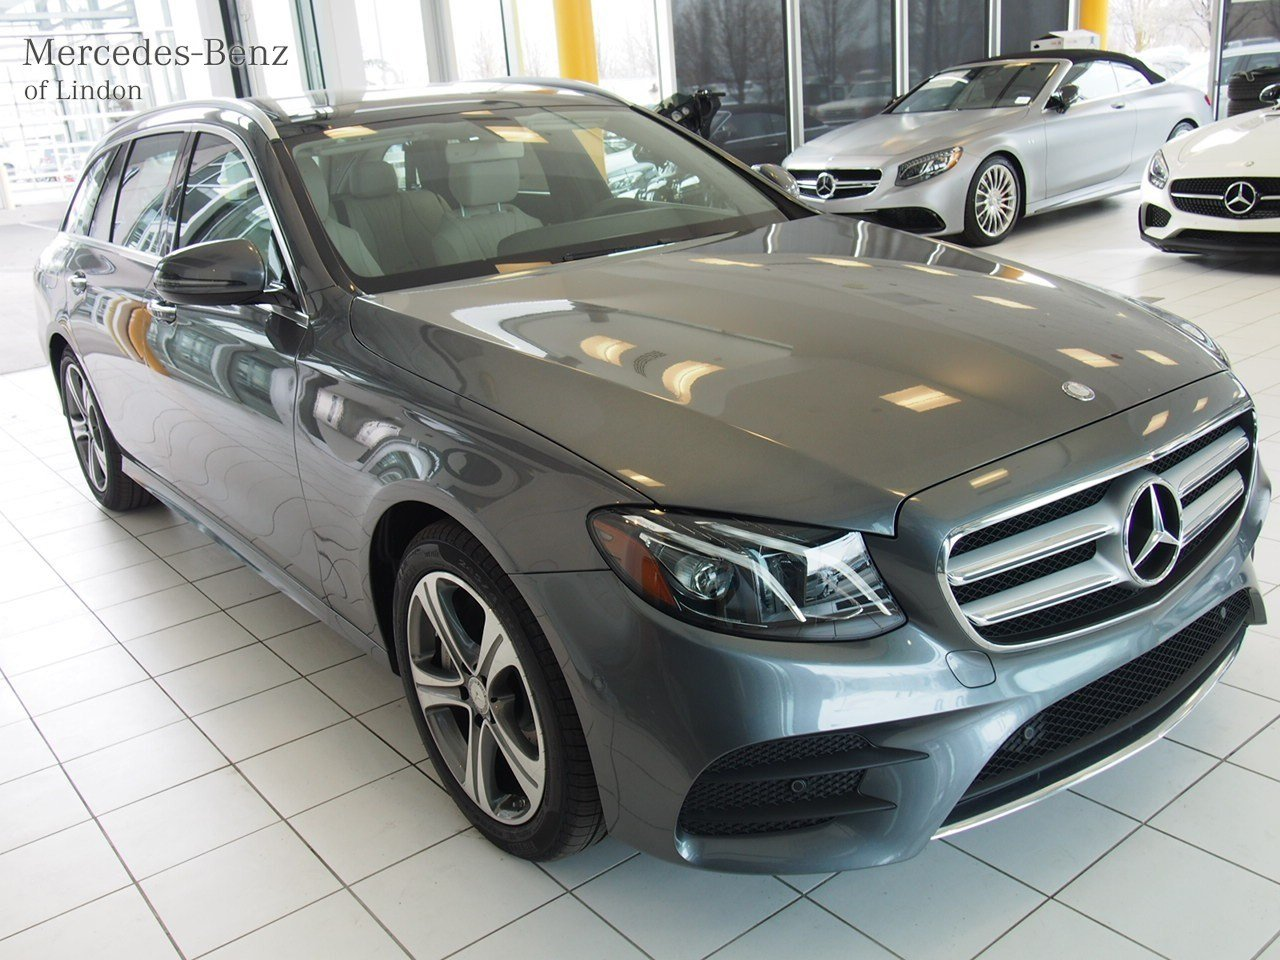 New 2017 mercedes benz e class e 400 wagon in lindon for Mercedes benz station wagon 2017